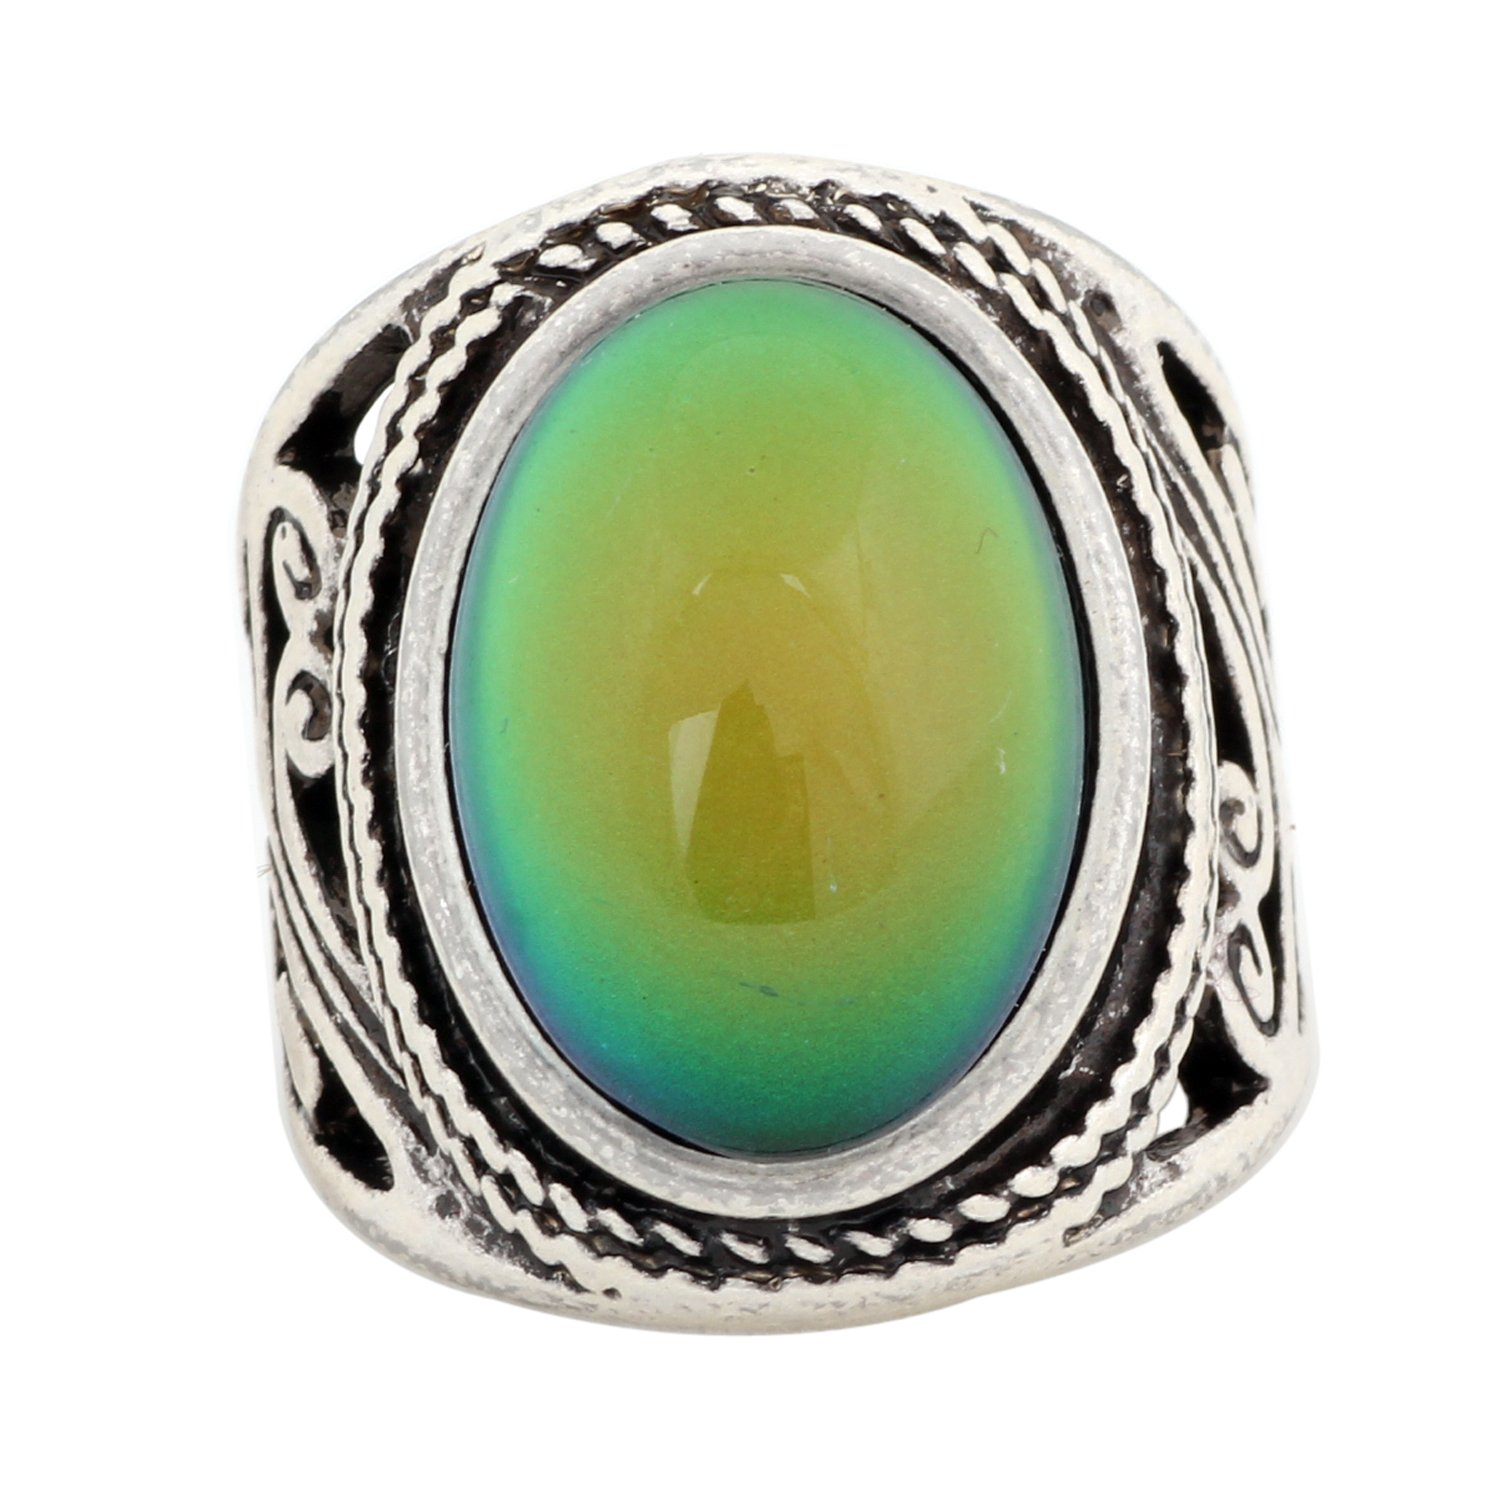 Amazon mood ring changing color for adults antique sterling amazon mood ring changing color for adults antique sterling silver vintage statement rings women rs019 jewelry nvjuhfo Image collections